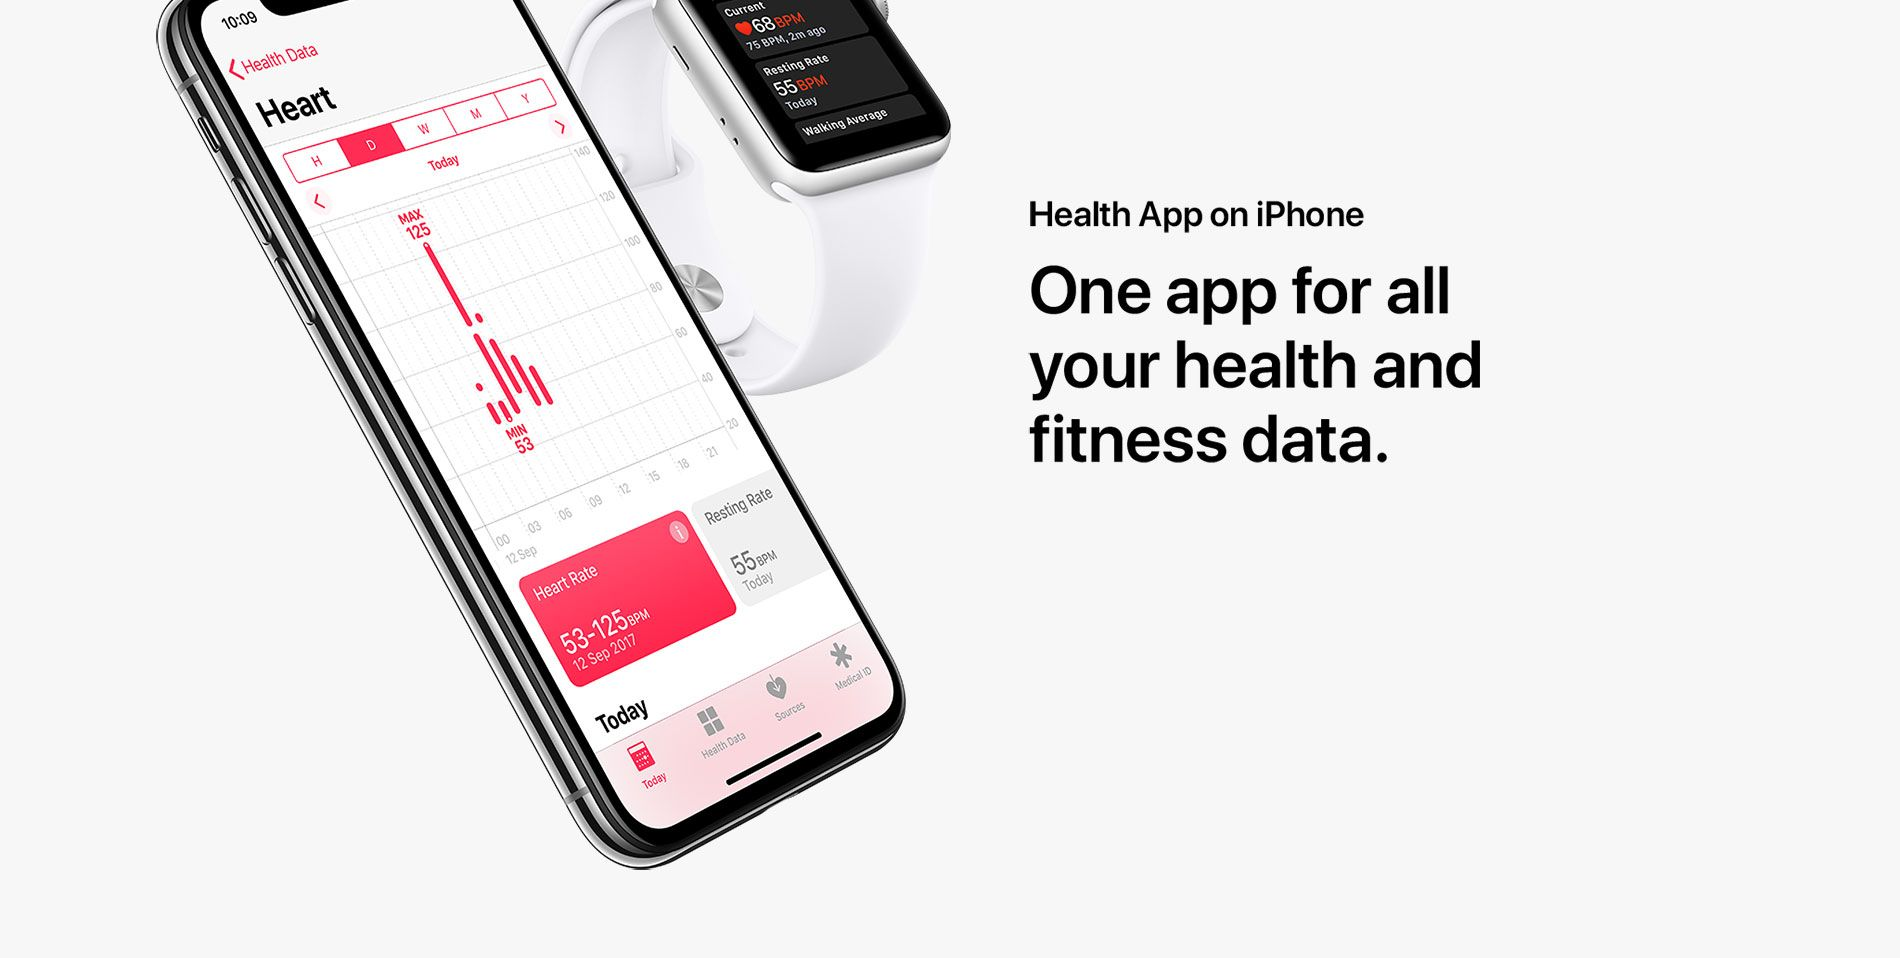 Health App on iPhone - One app for all your health and fitness data